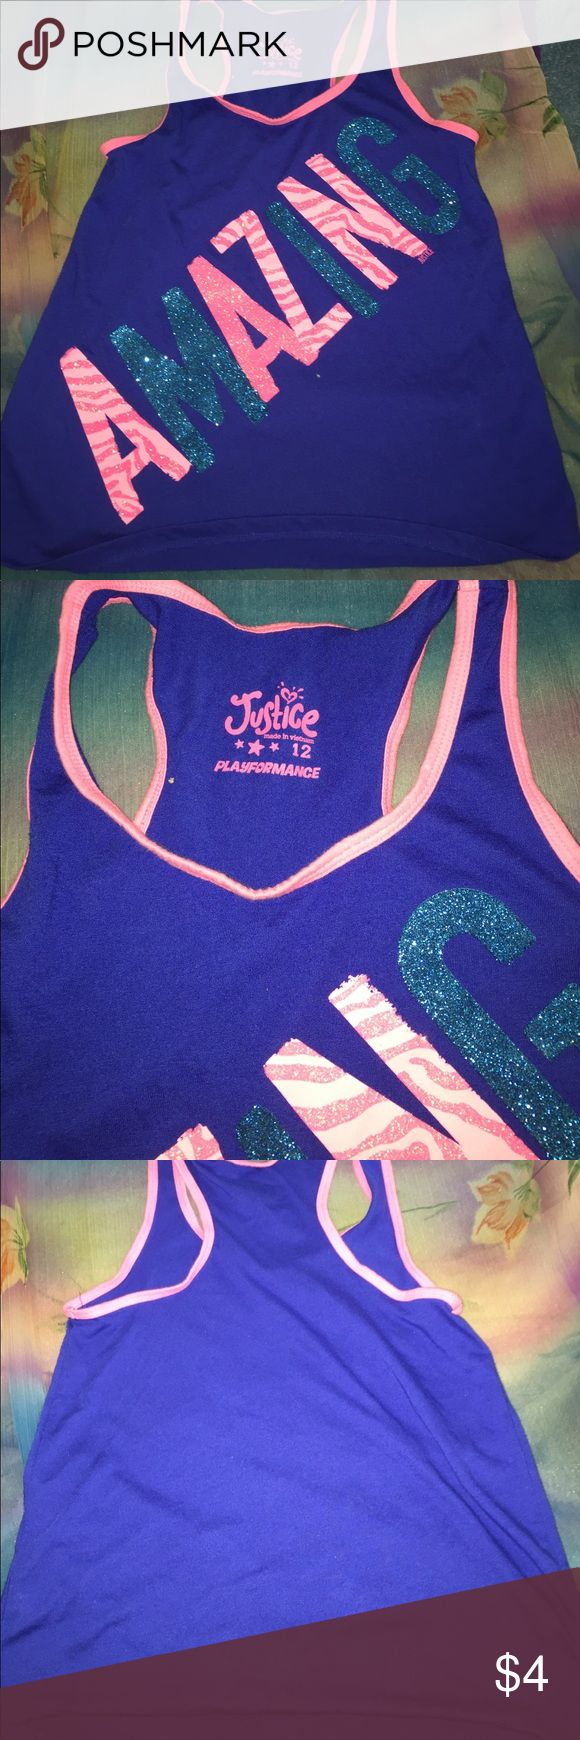 Justice blue muscle shirt Blues muscle shirt with pink trim. Size 12 justice playformance Justice Shirts & Tops Tank Tops